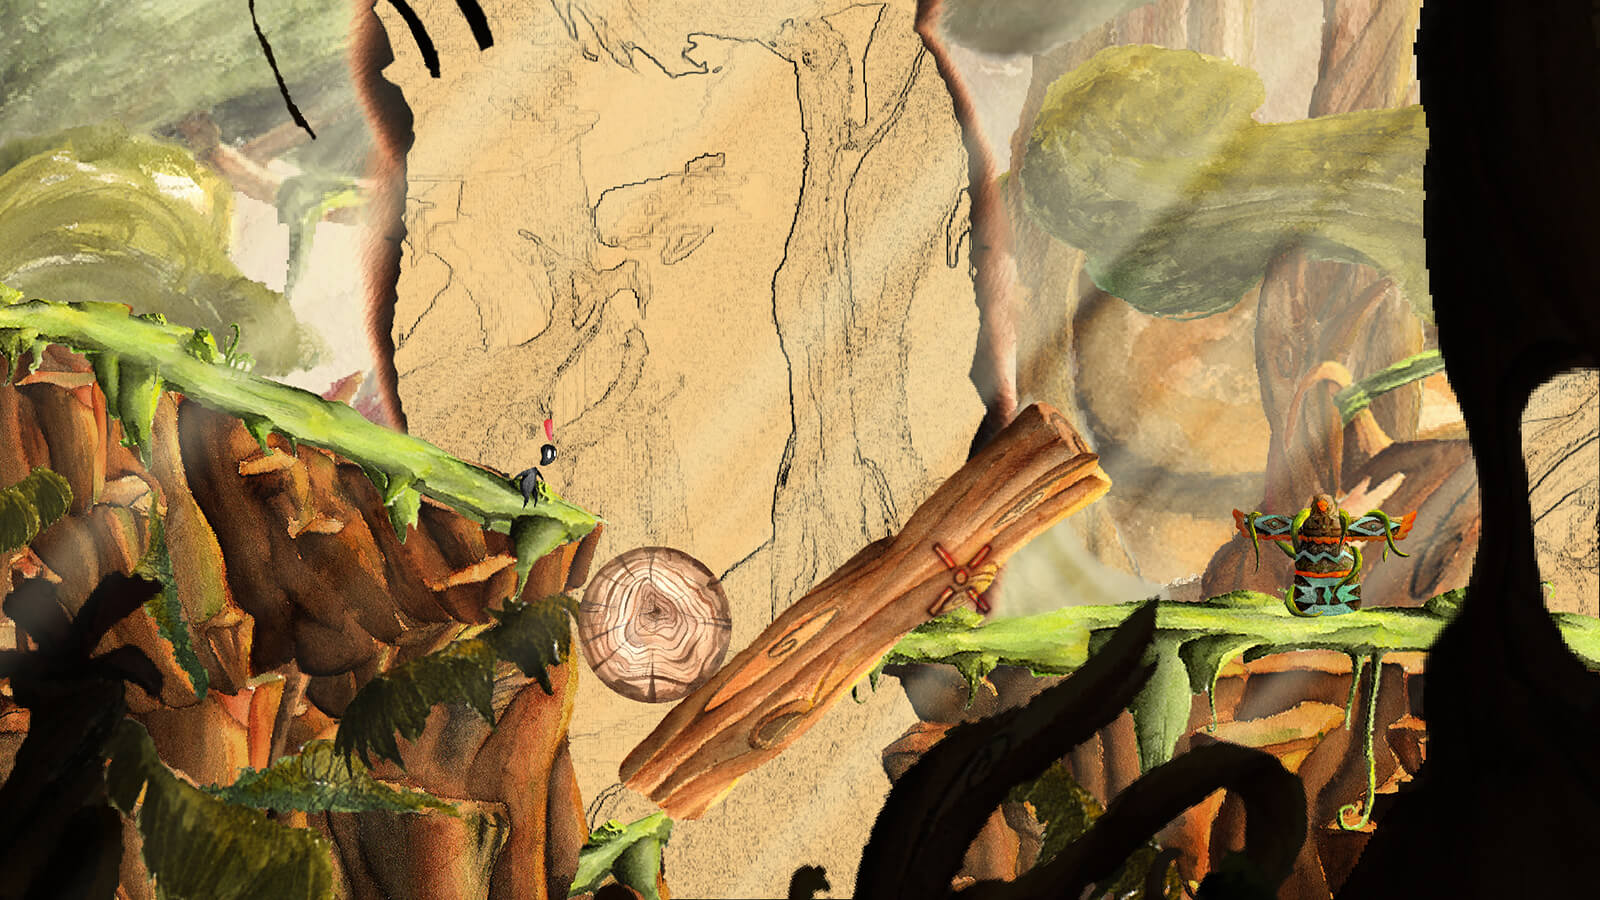 In a bright, 2D jungle scene, a black figure stands before a large ravine bridged by logs wedged against each other.